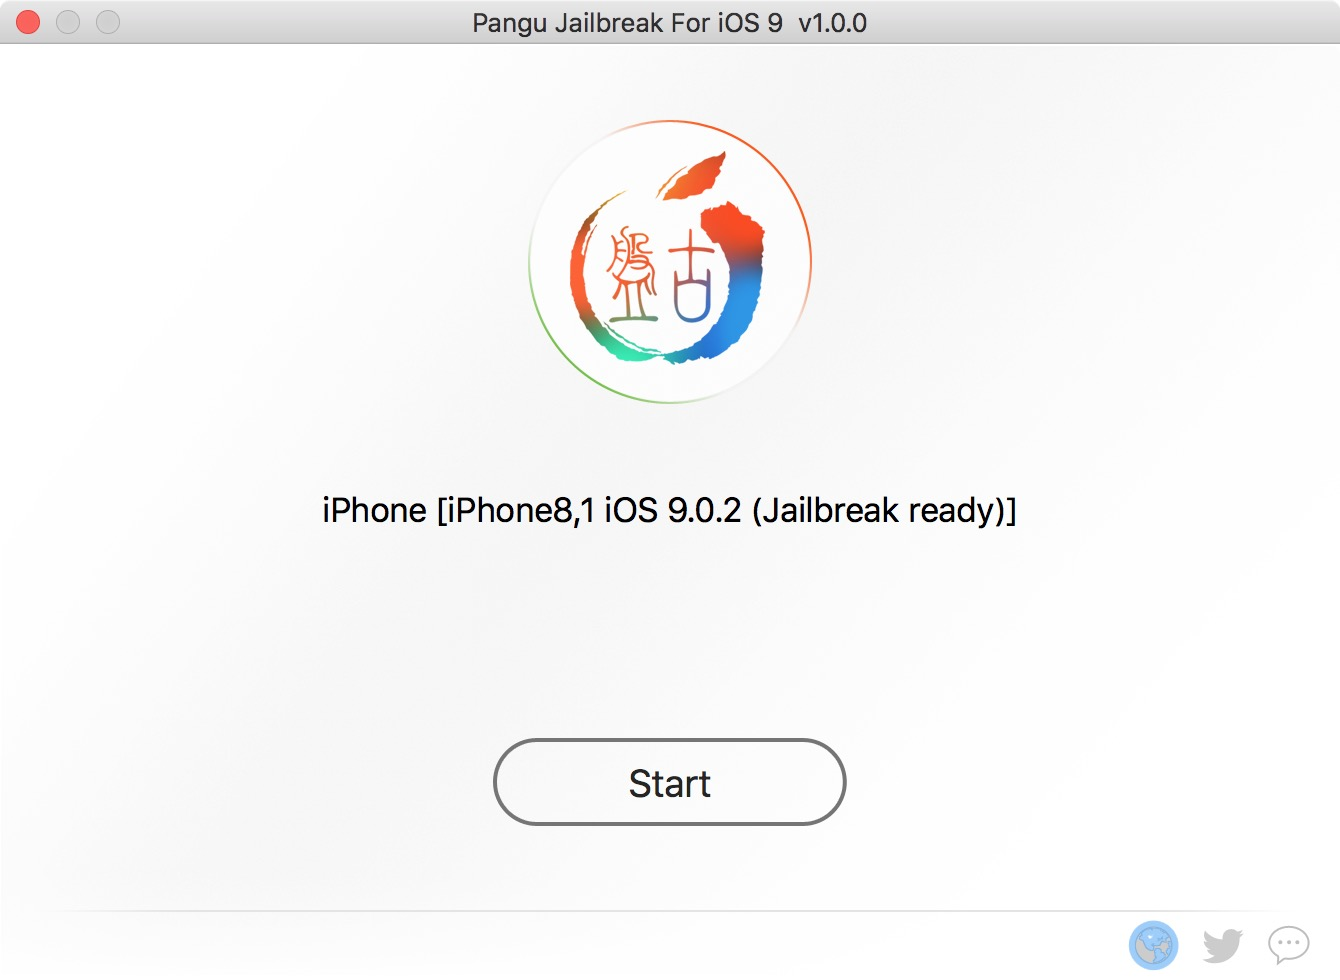 3 Start pangu jailbreak ios 9